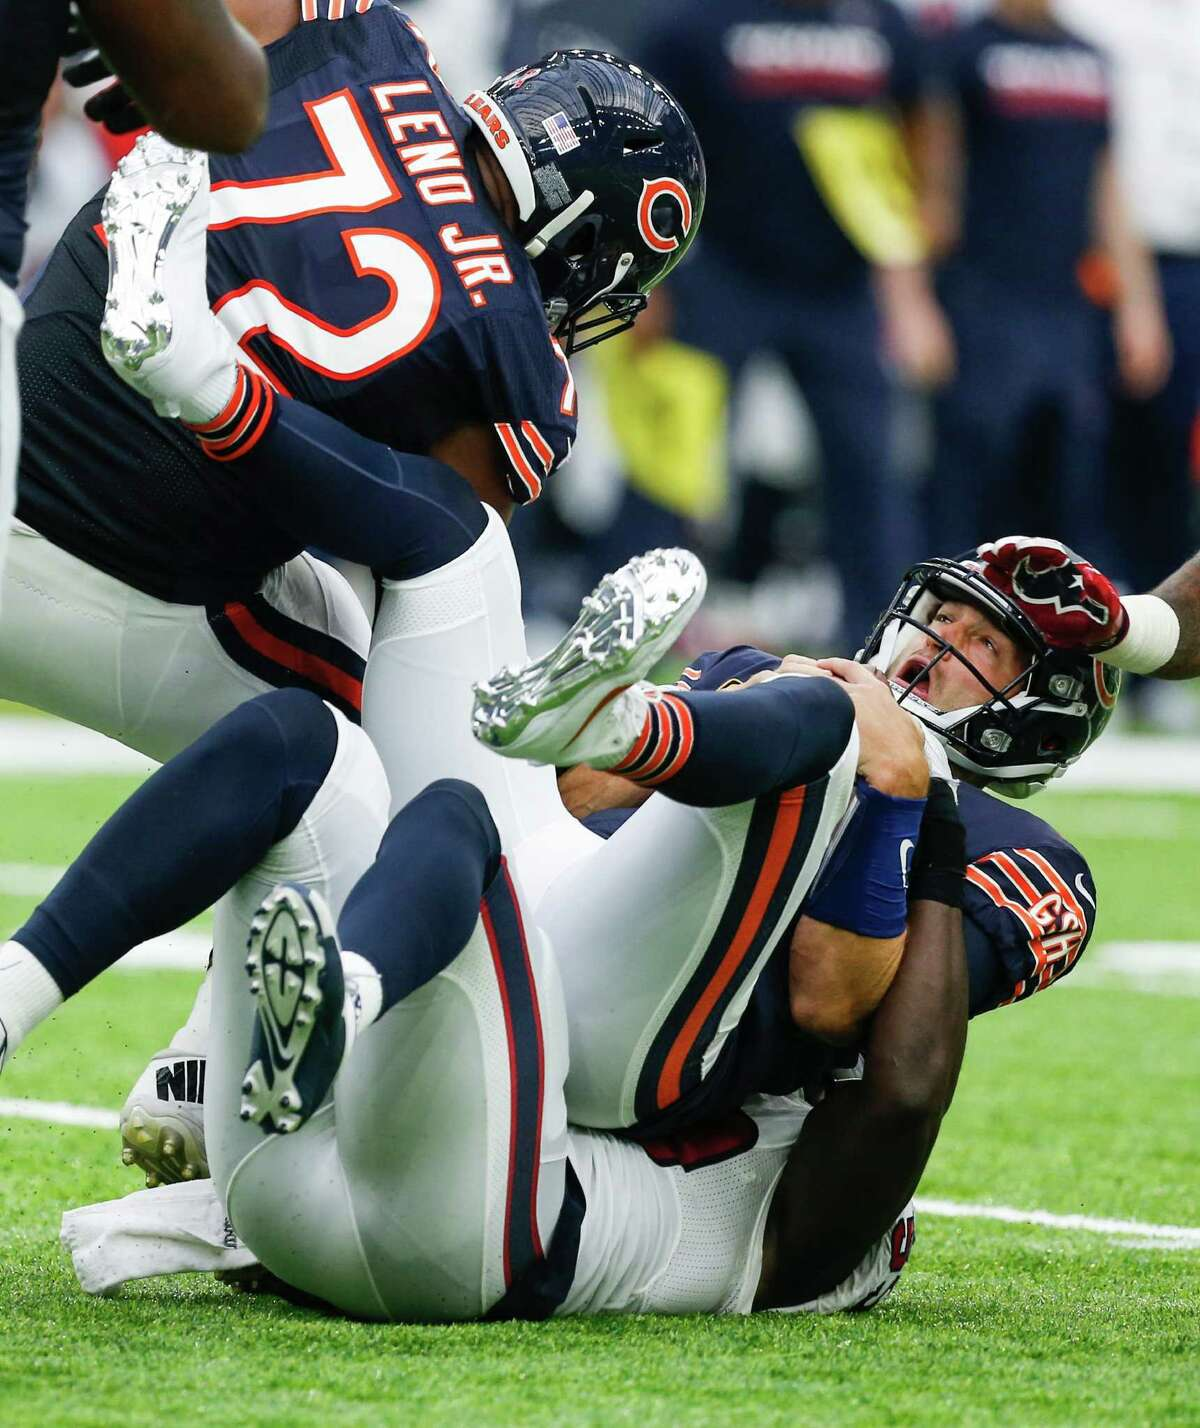 Chicago Bears quarterback Jay Cutler (6) is sacked by Houston Texans outside linebacker Whitney Mercilus during the second quarter of an NFL football game at NRG Stadium on Sunday, Sept. 11, 2016, in Houston.